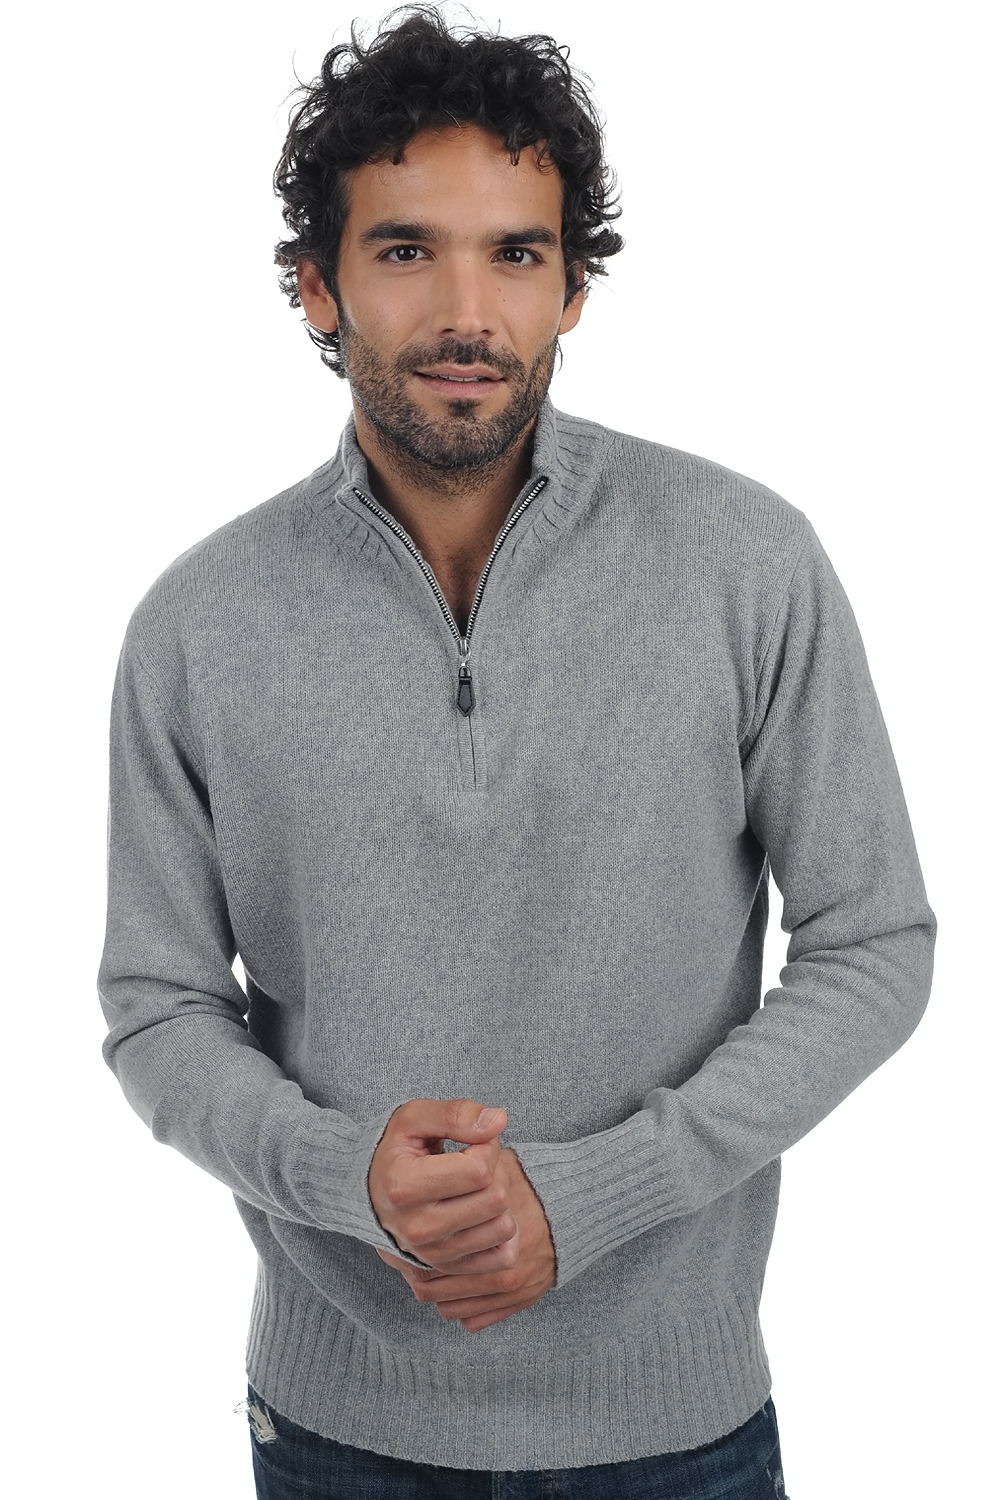 Yak yak vicuna yak for men yakcharl silver m